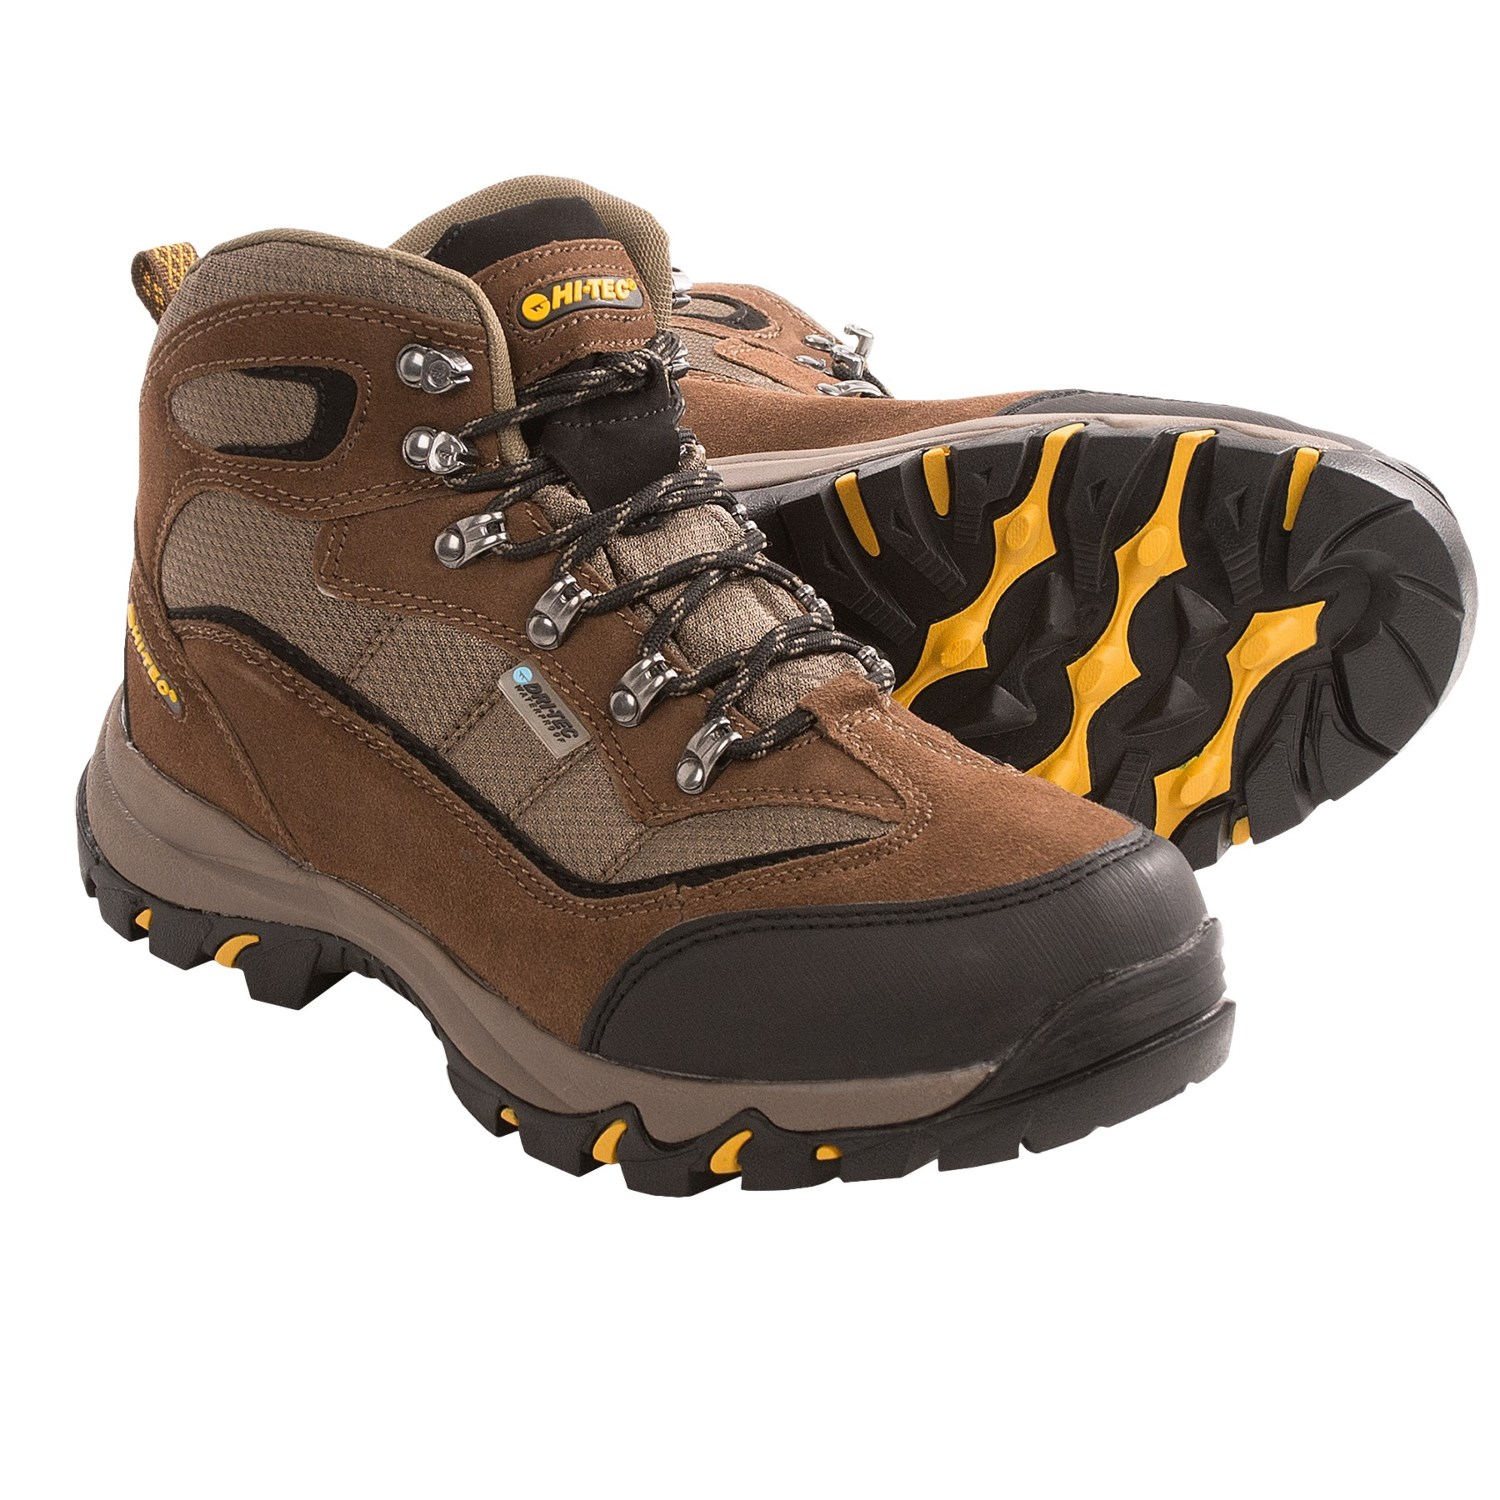 Hi Tec Com Hi Tec Skamania Mid Hiking Boots Waterproof Suede For Men